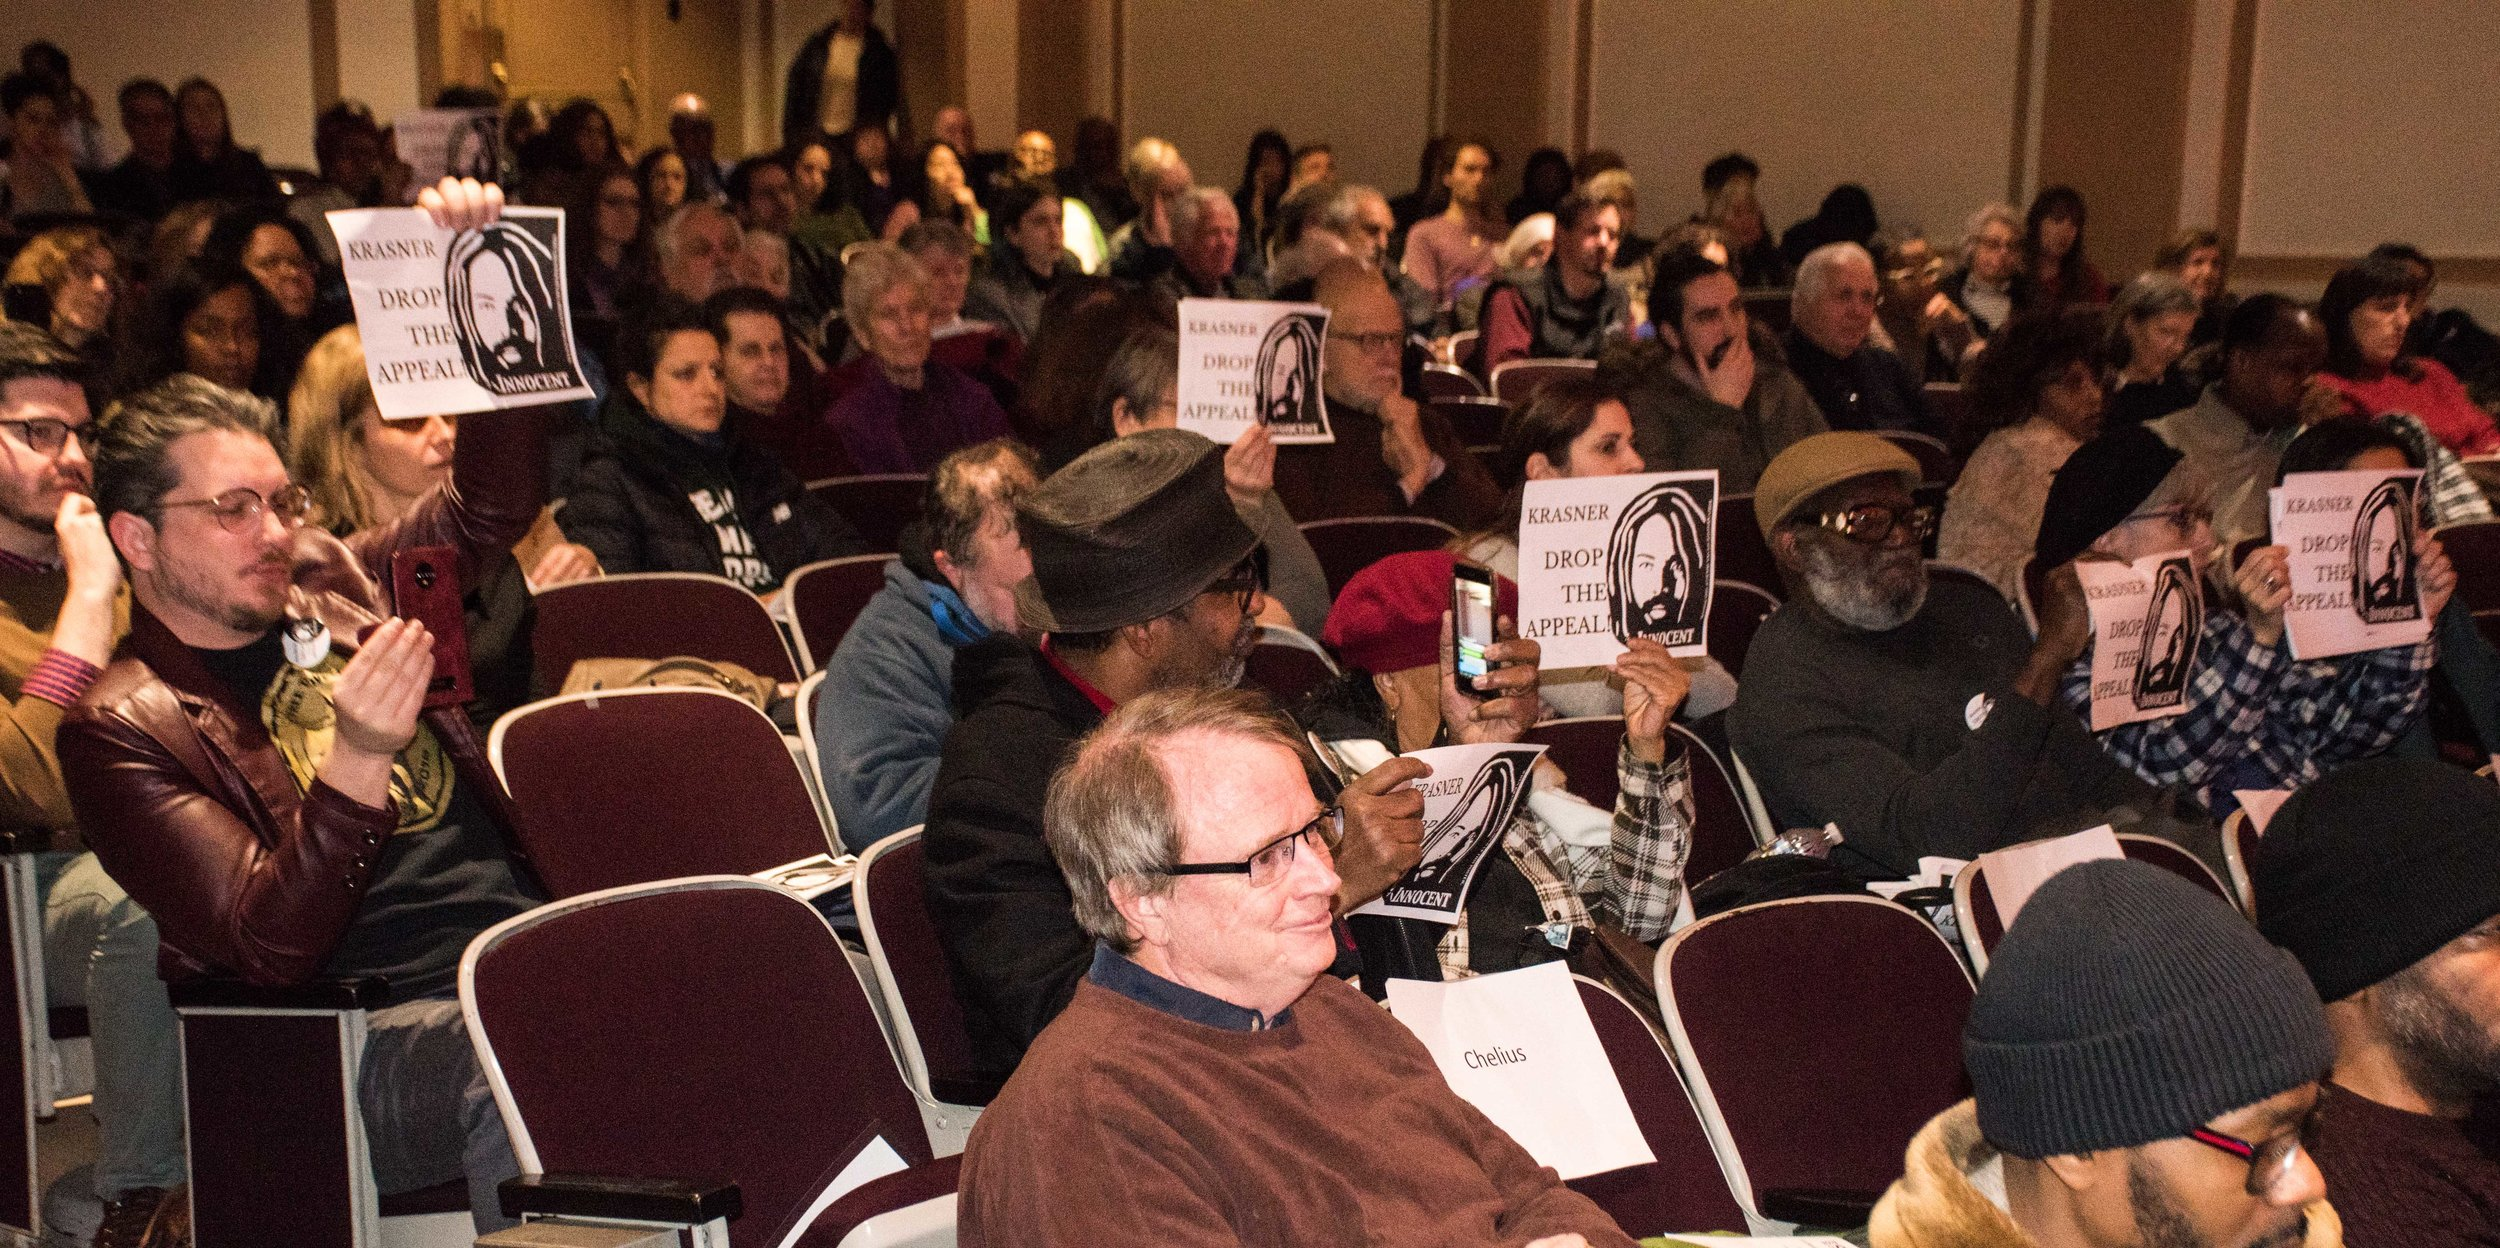 "2.11.19 Philadelphia - Mumia supporters hold up ""Krasner, Drop the Appeal"" posters as the phila. DA Larry Krasner speaks at a Criminal Justice Reform Panel at the Philadelphia Main Library."